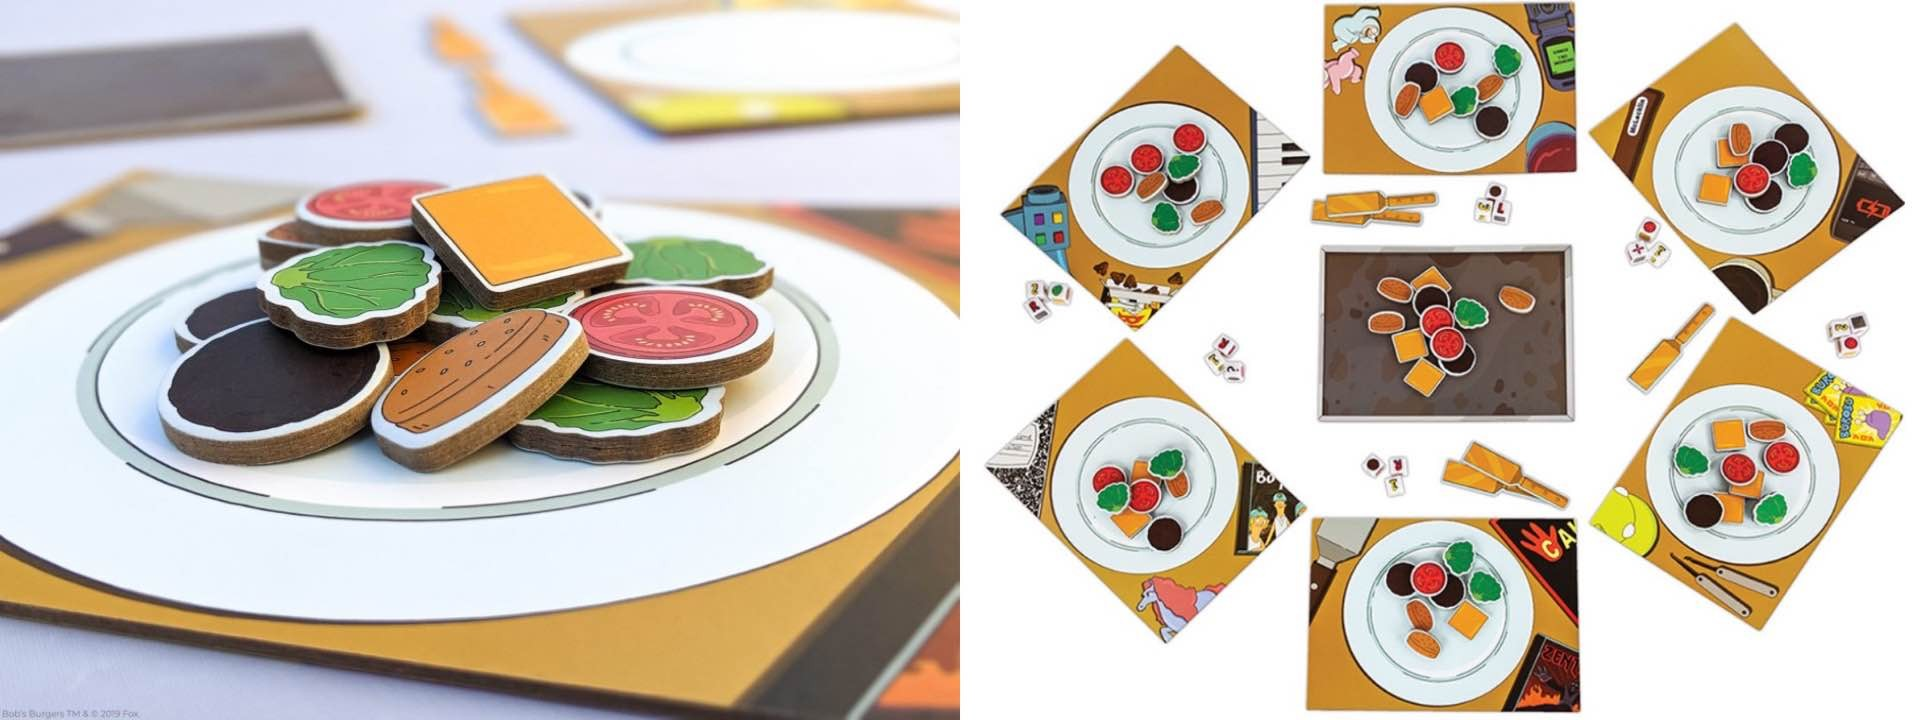 bobs-burgers-belcher-family-food-fight-board-game-components